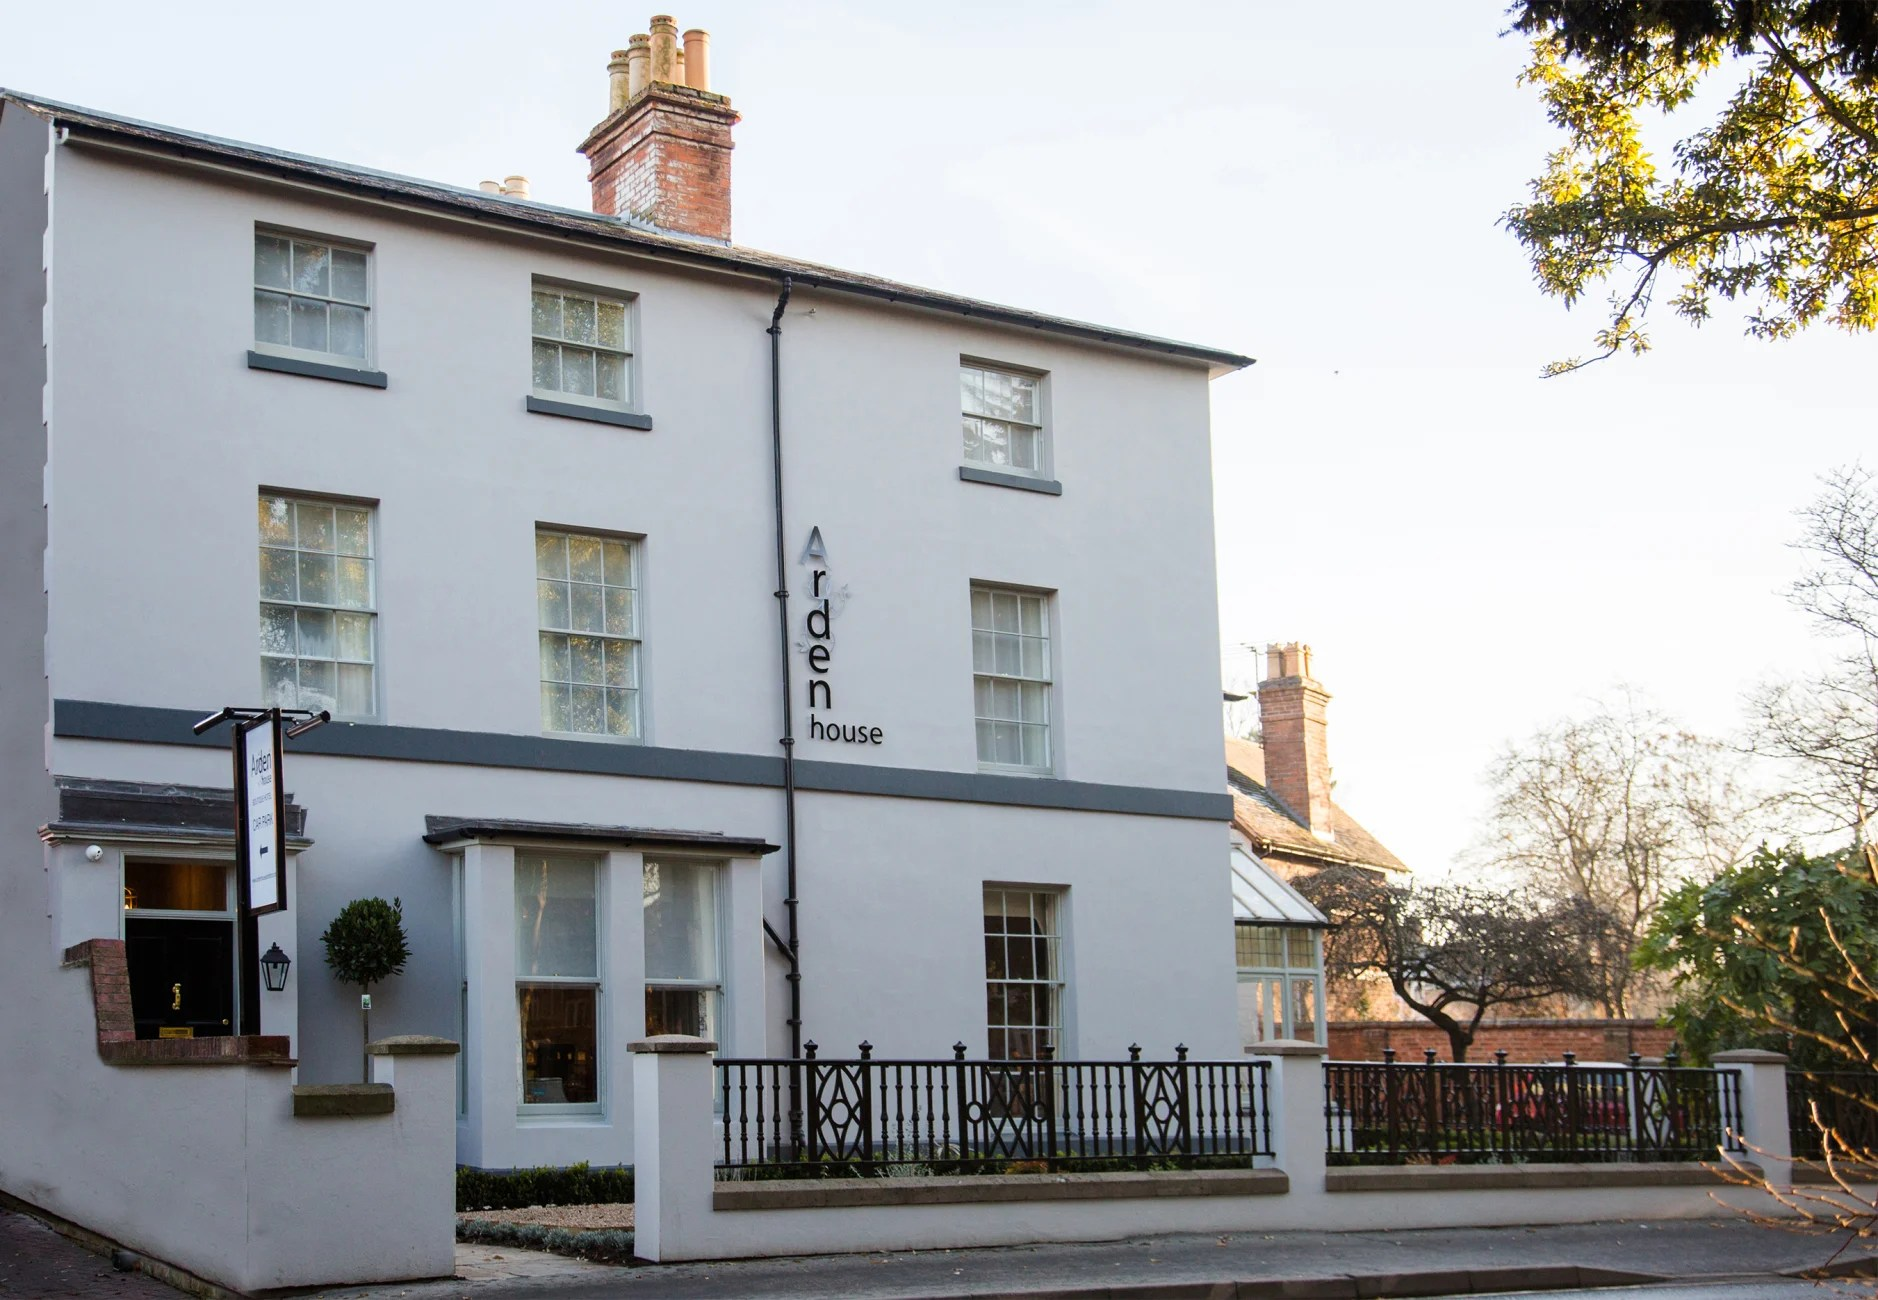 Bed And Breakfast Alcester Hotel Arden House Stratford Upon Avon Trivago Co Uk